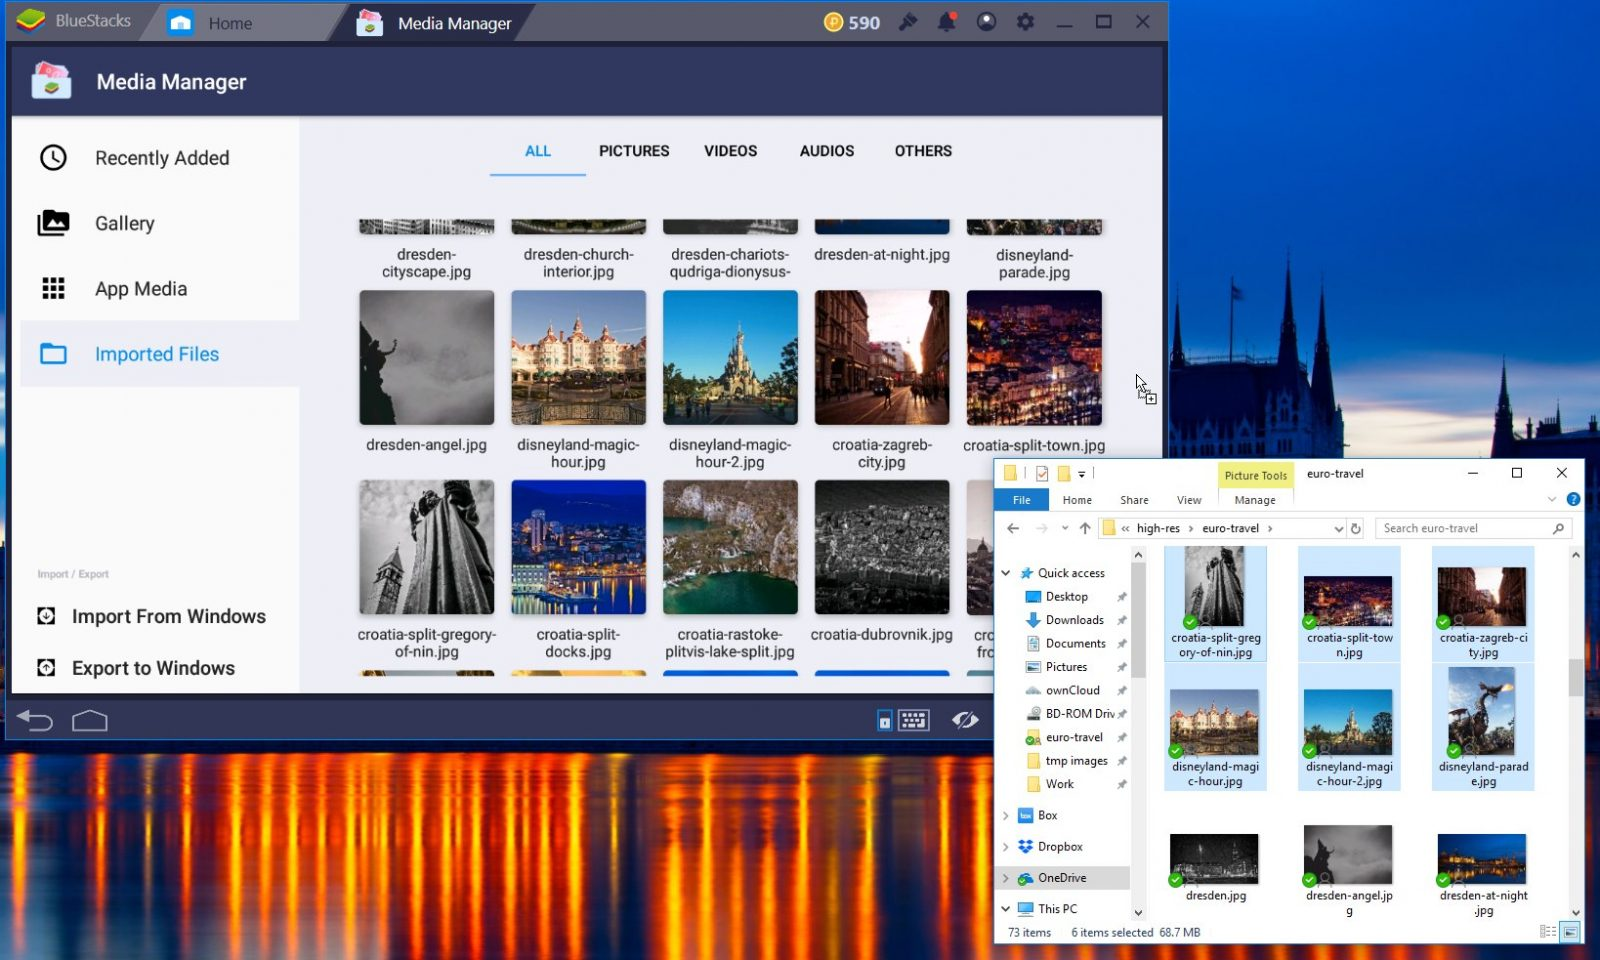 Complete Guide to Setup Bluestacks for Instagram Uploades on Windows